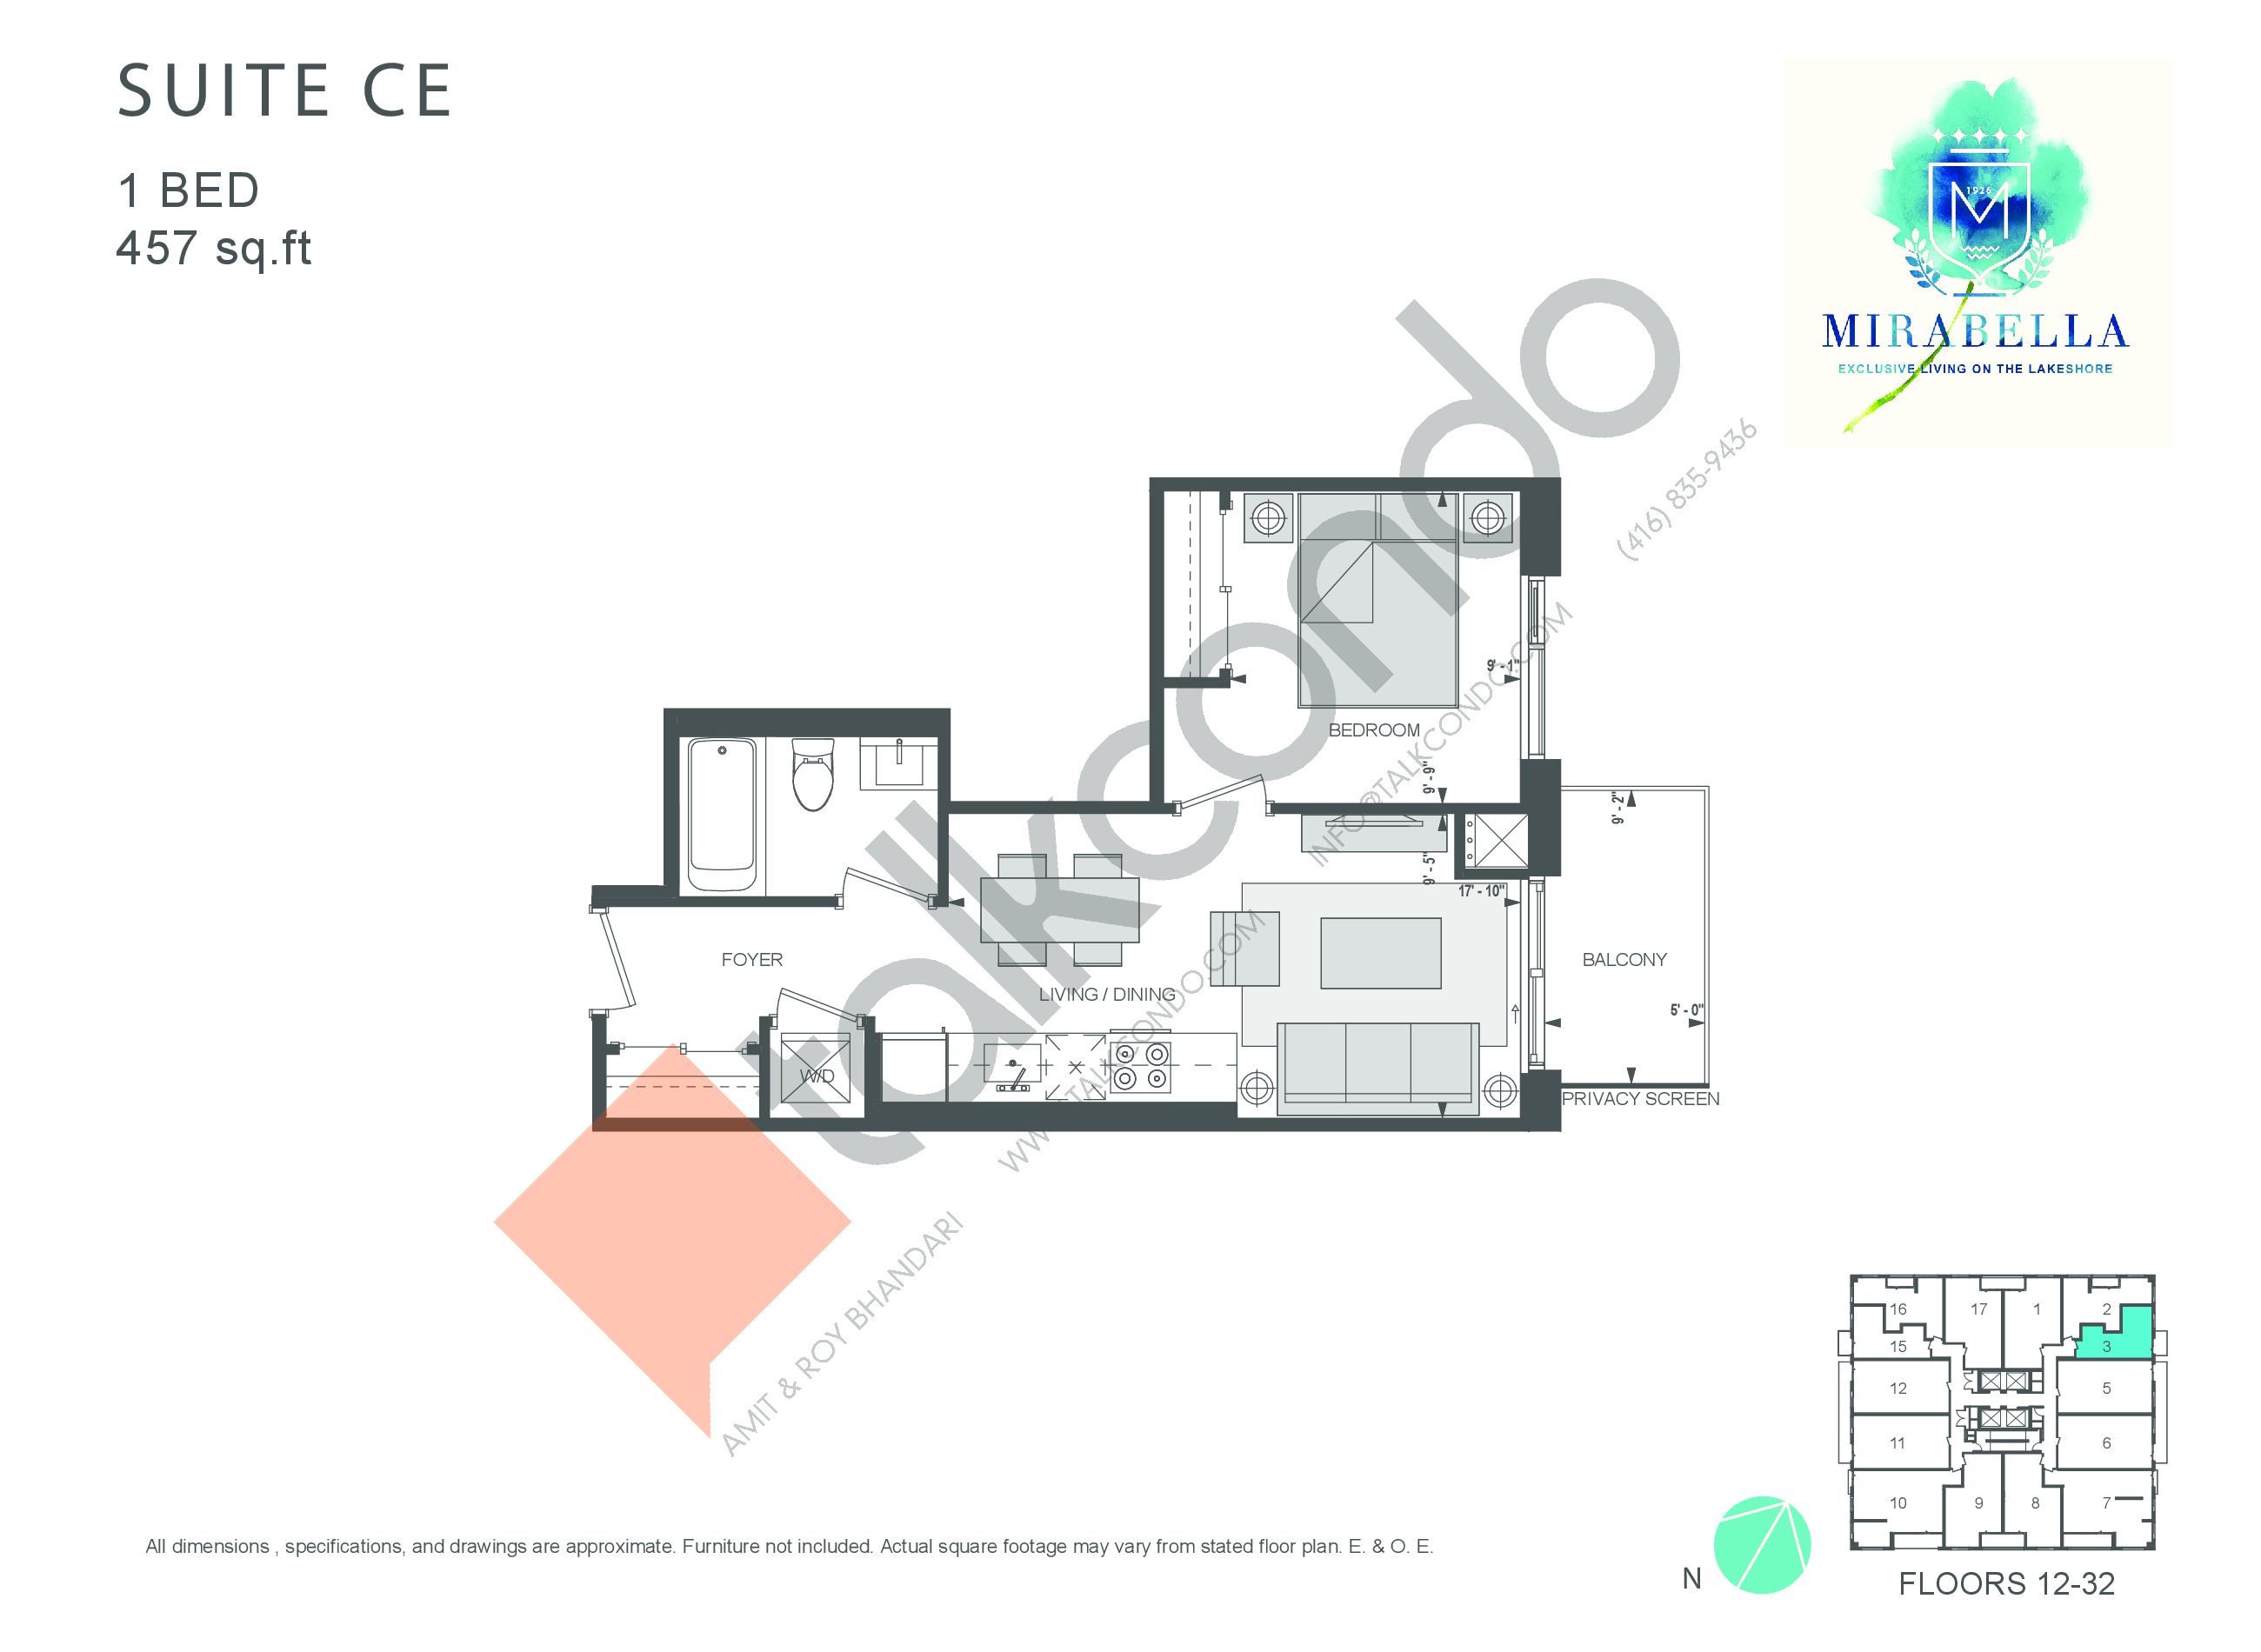 Suite CE Floor Plan at Mirabella Luxury Condos East Tower - 457 sq.ft